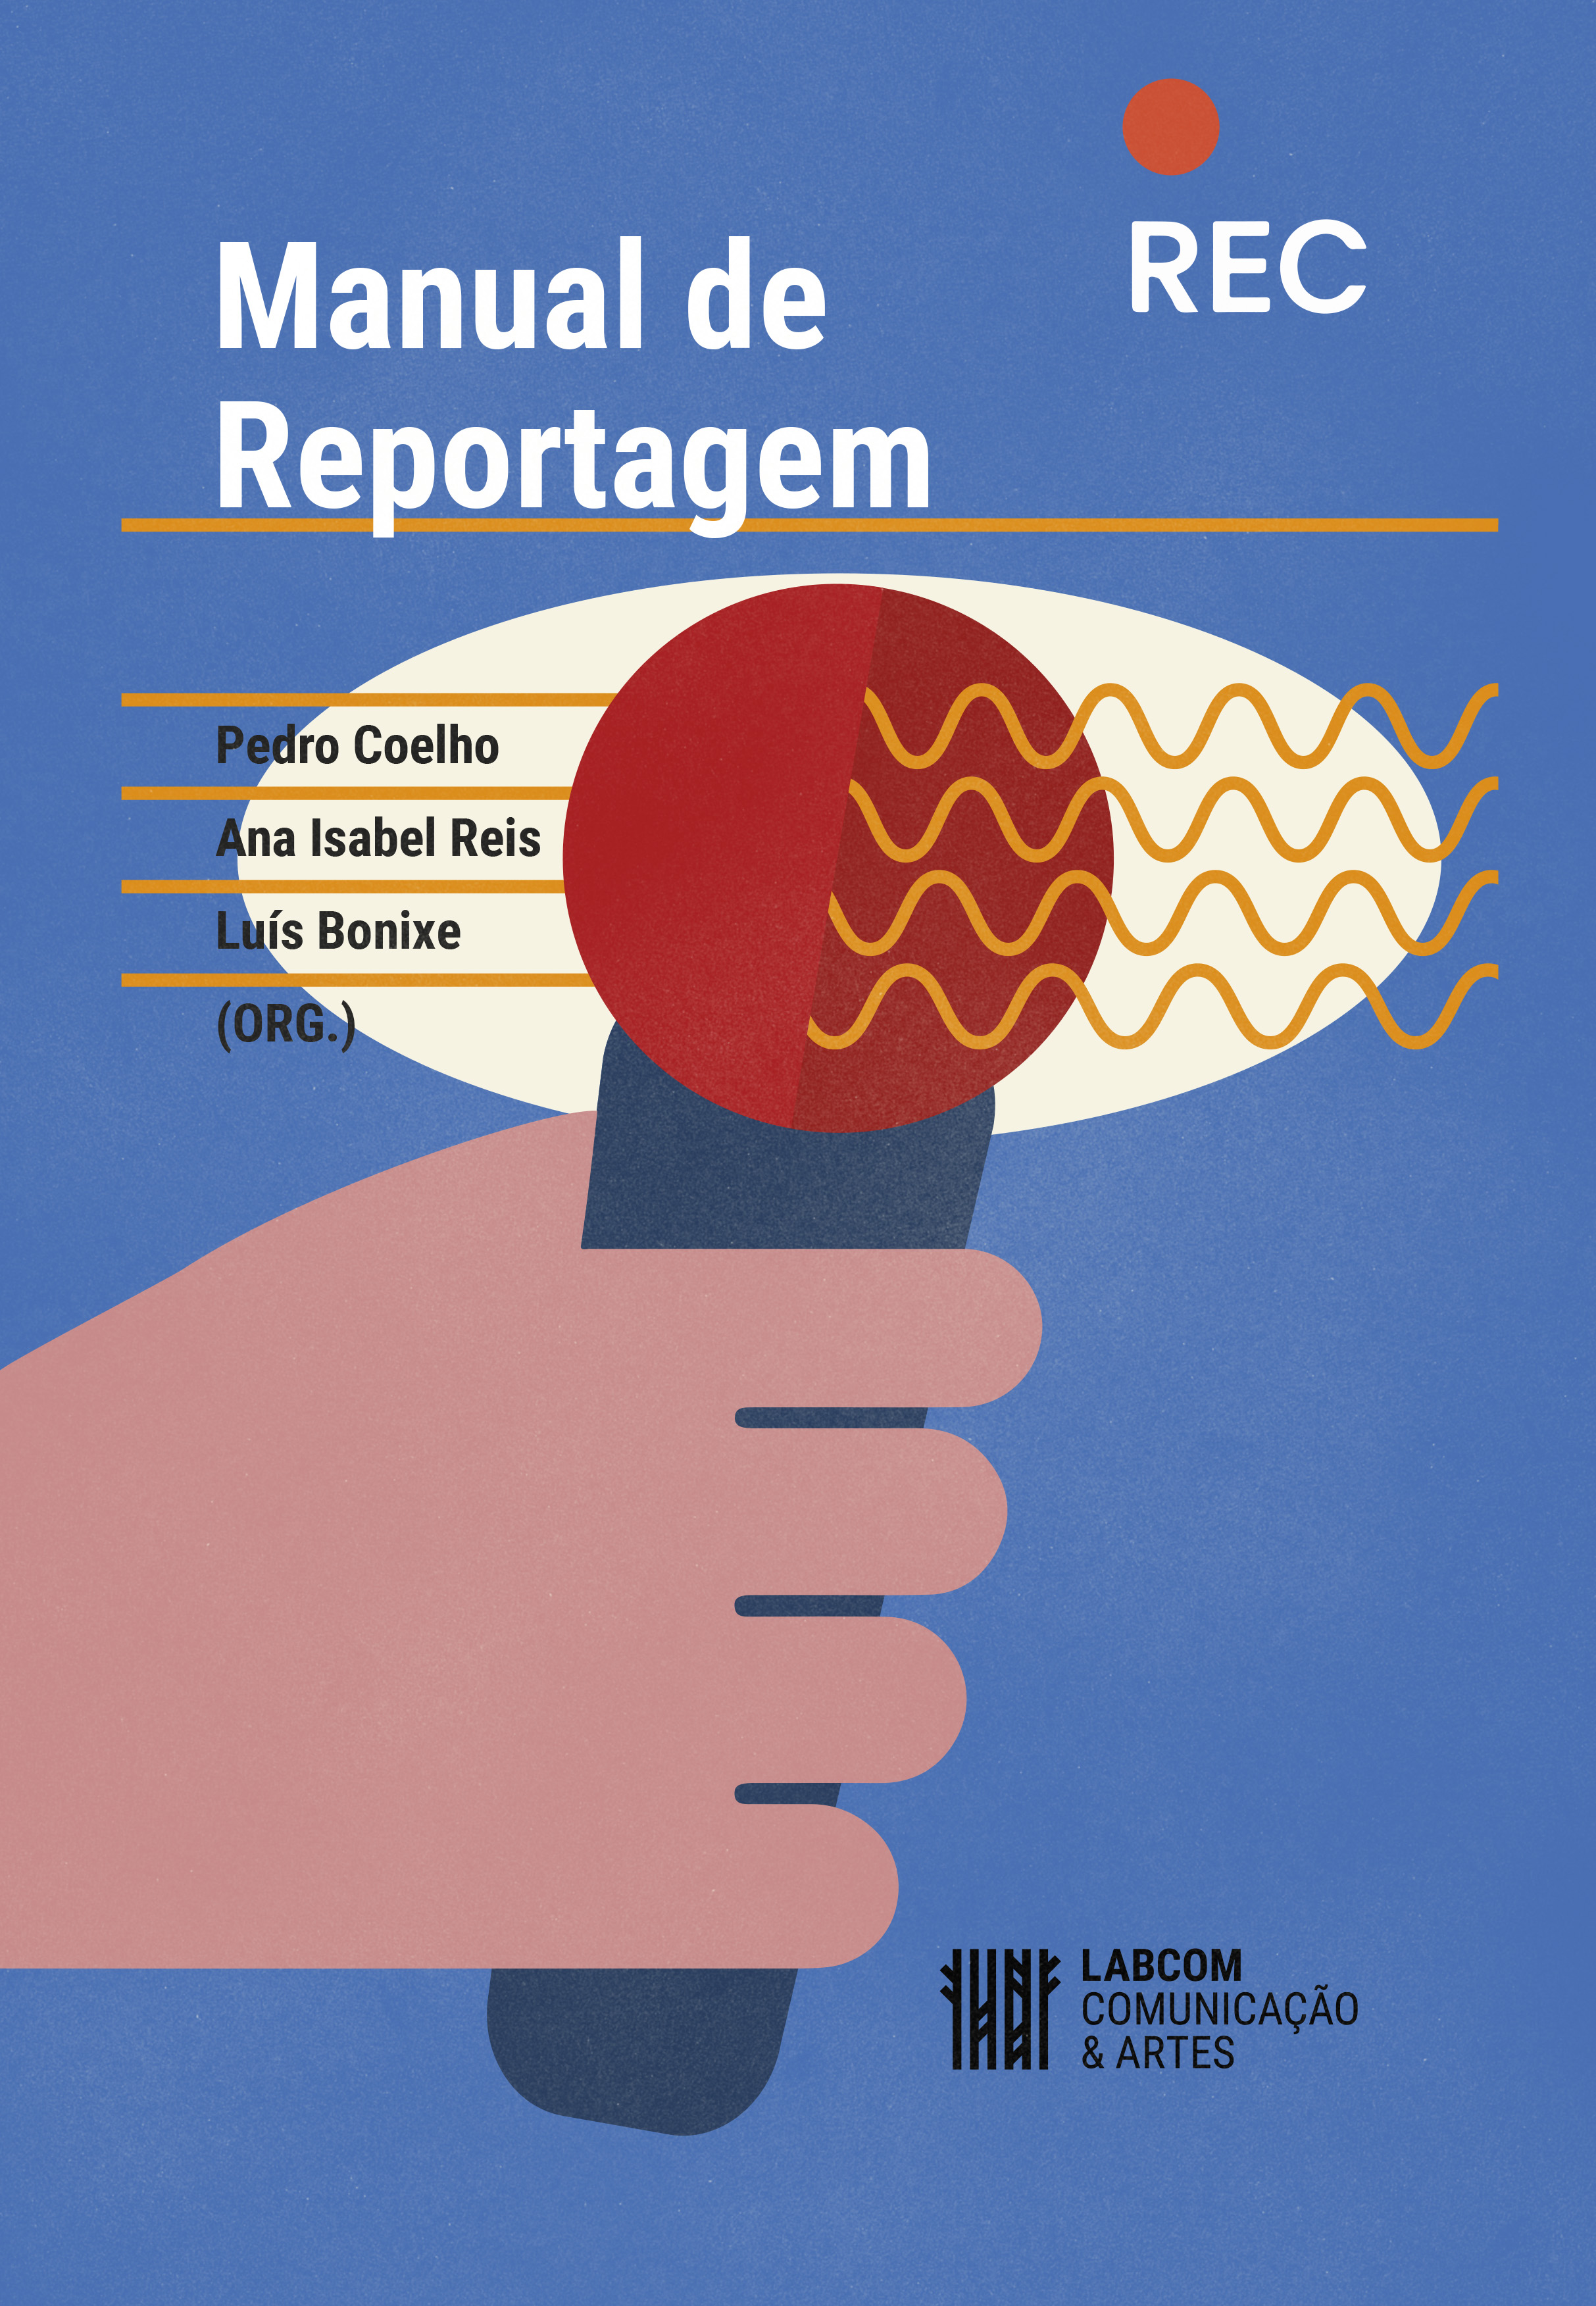 Manual de Reportagem